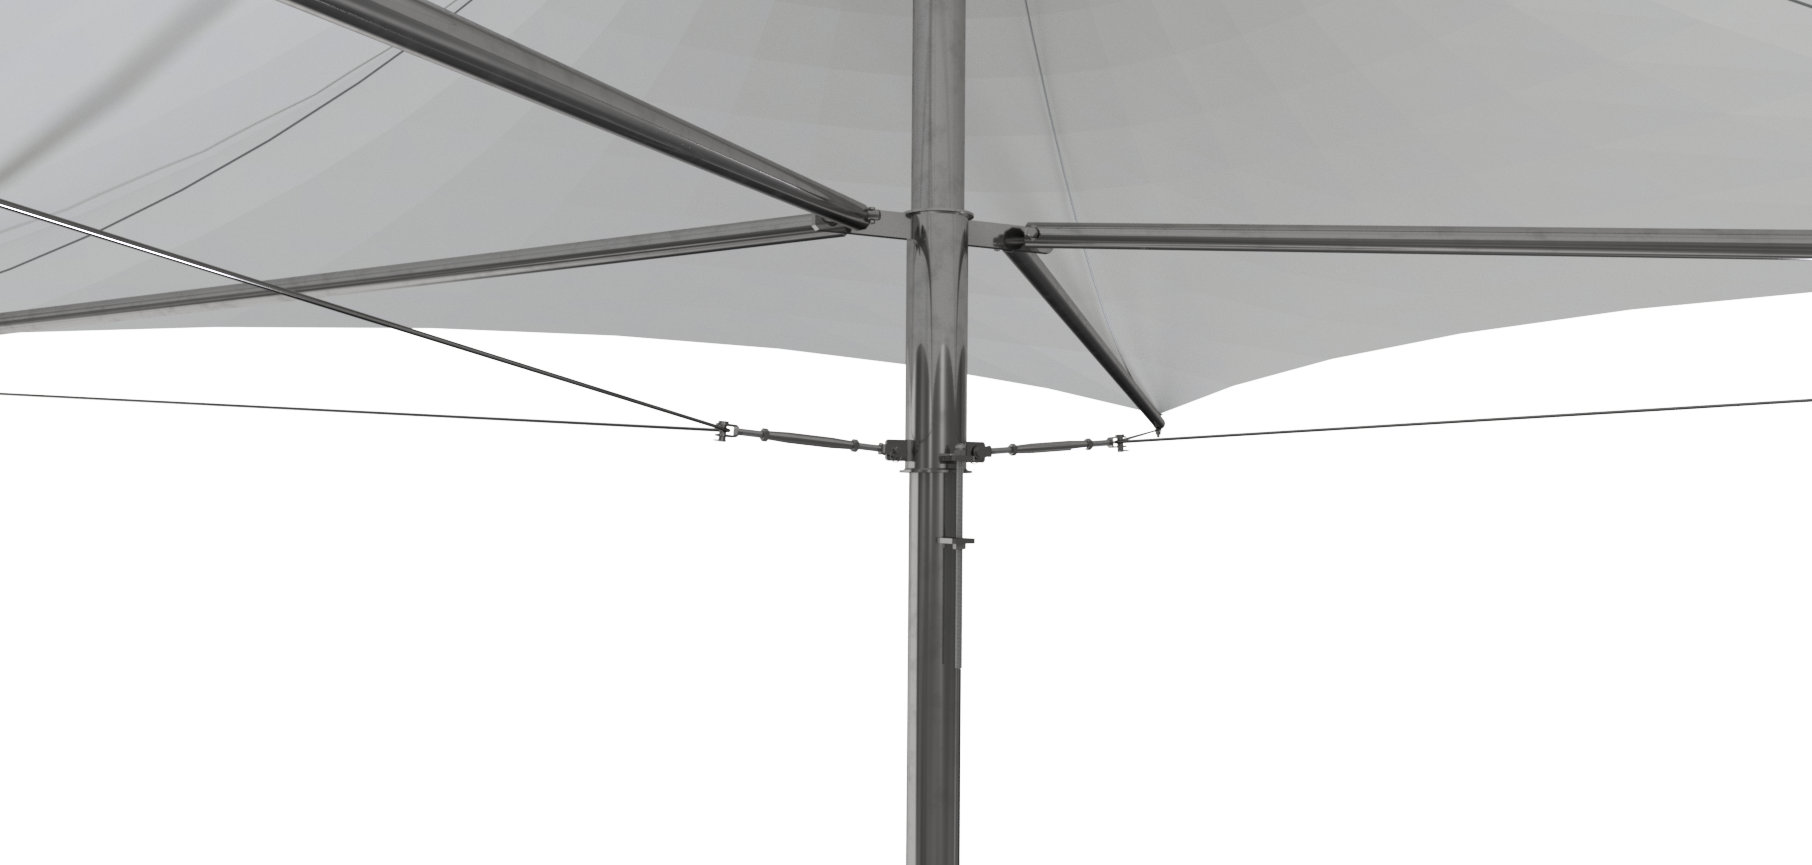 3x3 Stainless Steel Retractable Umbrella